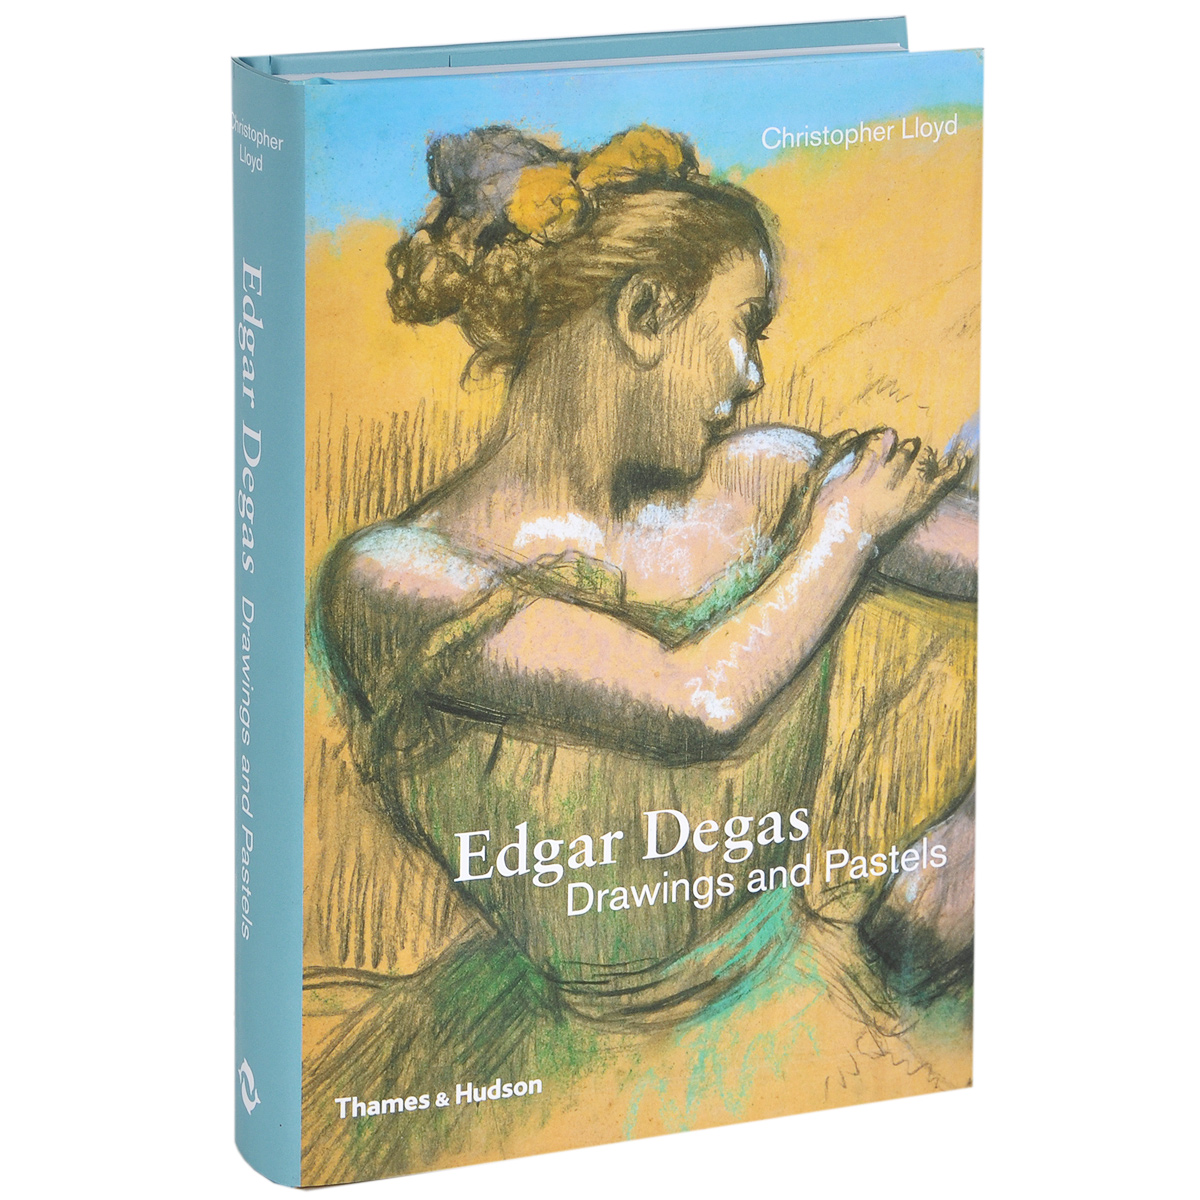 Edgar Degas: Drawings and Pastels nathalia brodskaya edgar degas